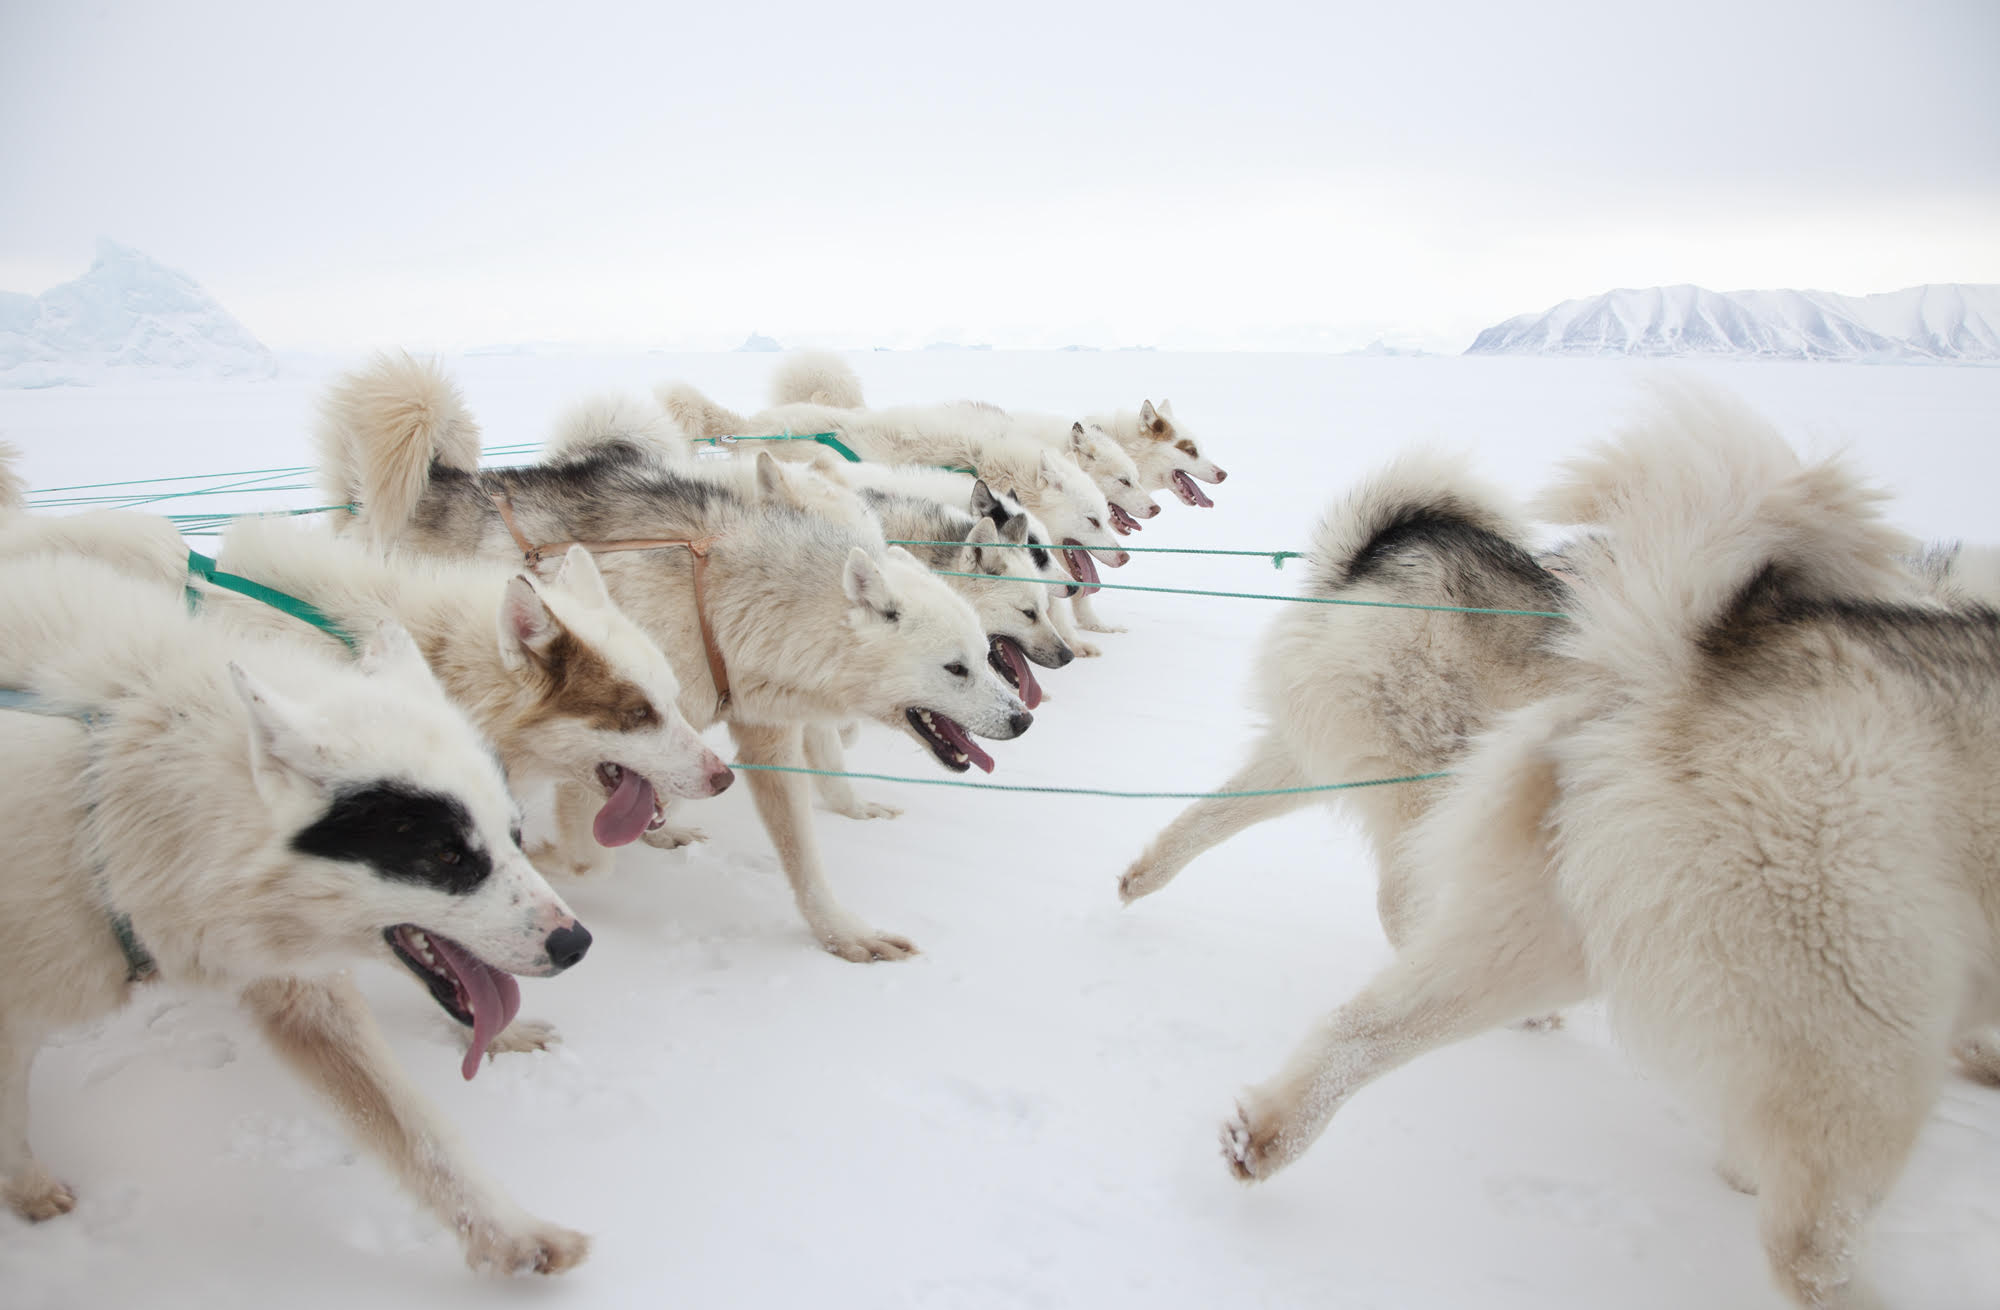 """""""Dogs Team"""" © Corina Gamma,  Greenlandic Sled Dog Team , Avannaa, Greenland 2015  A sled team can be up to 13 dogs. Greenlandic sled dogs are of a unique breed that only exists in Greenland north of the Arctic Circle. No other dog breeds are allowed north of the Arctic Circle in Greenland, to keep the breed pure."""